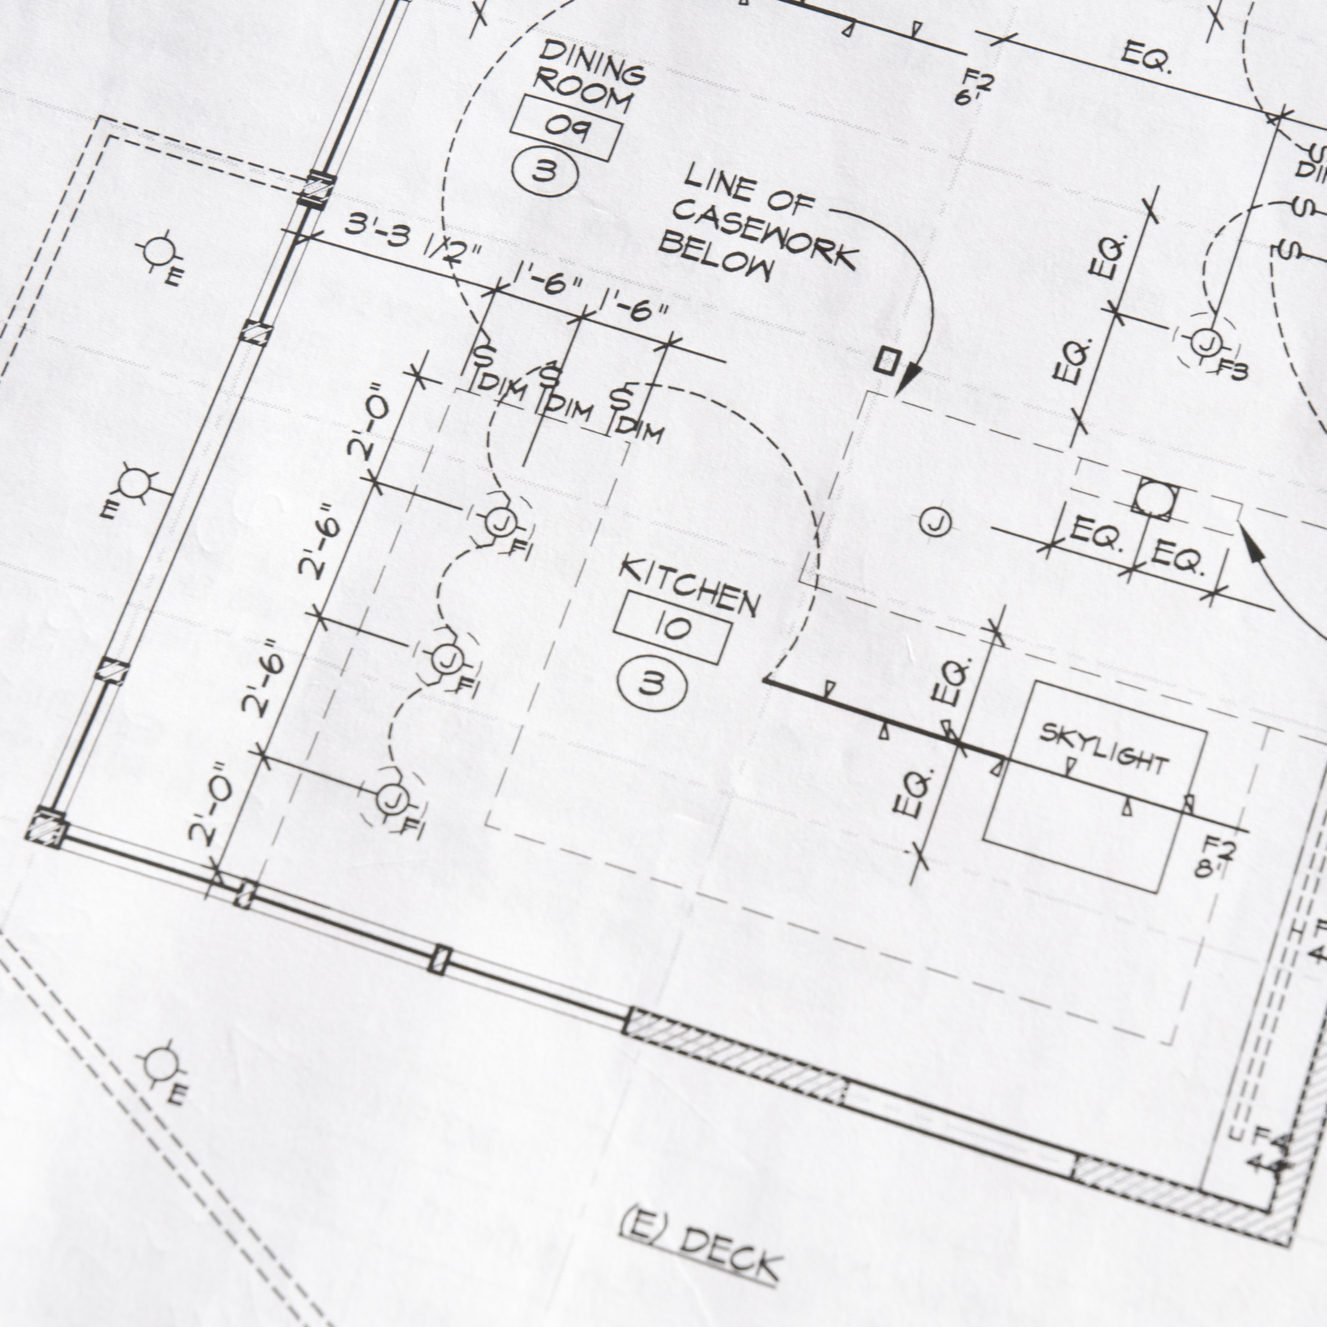 Home Remodel Blueprint of a Kitchen's Electrical Plan